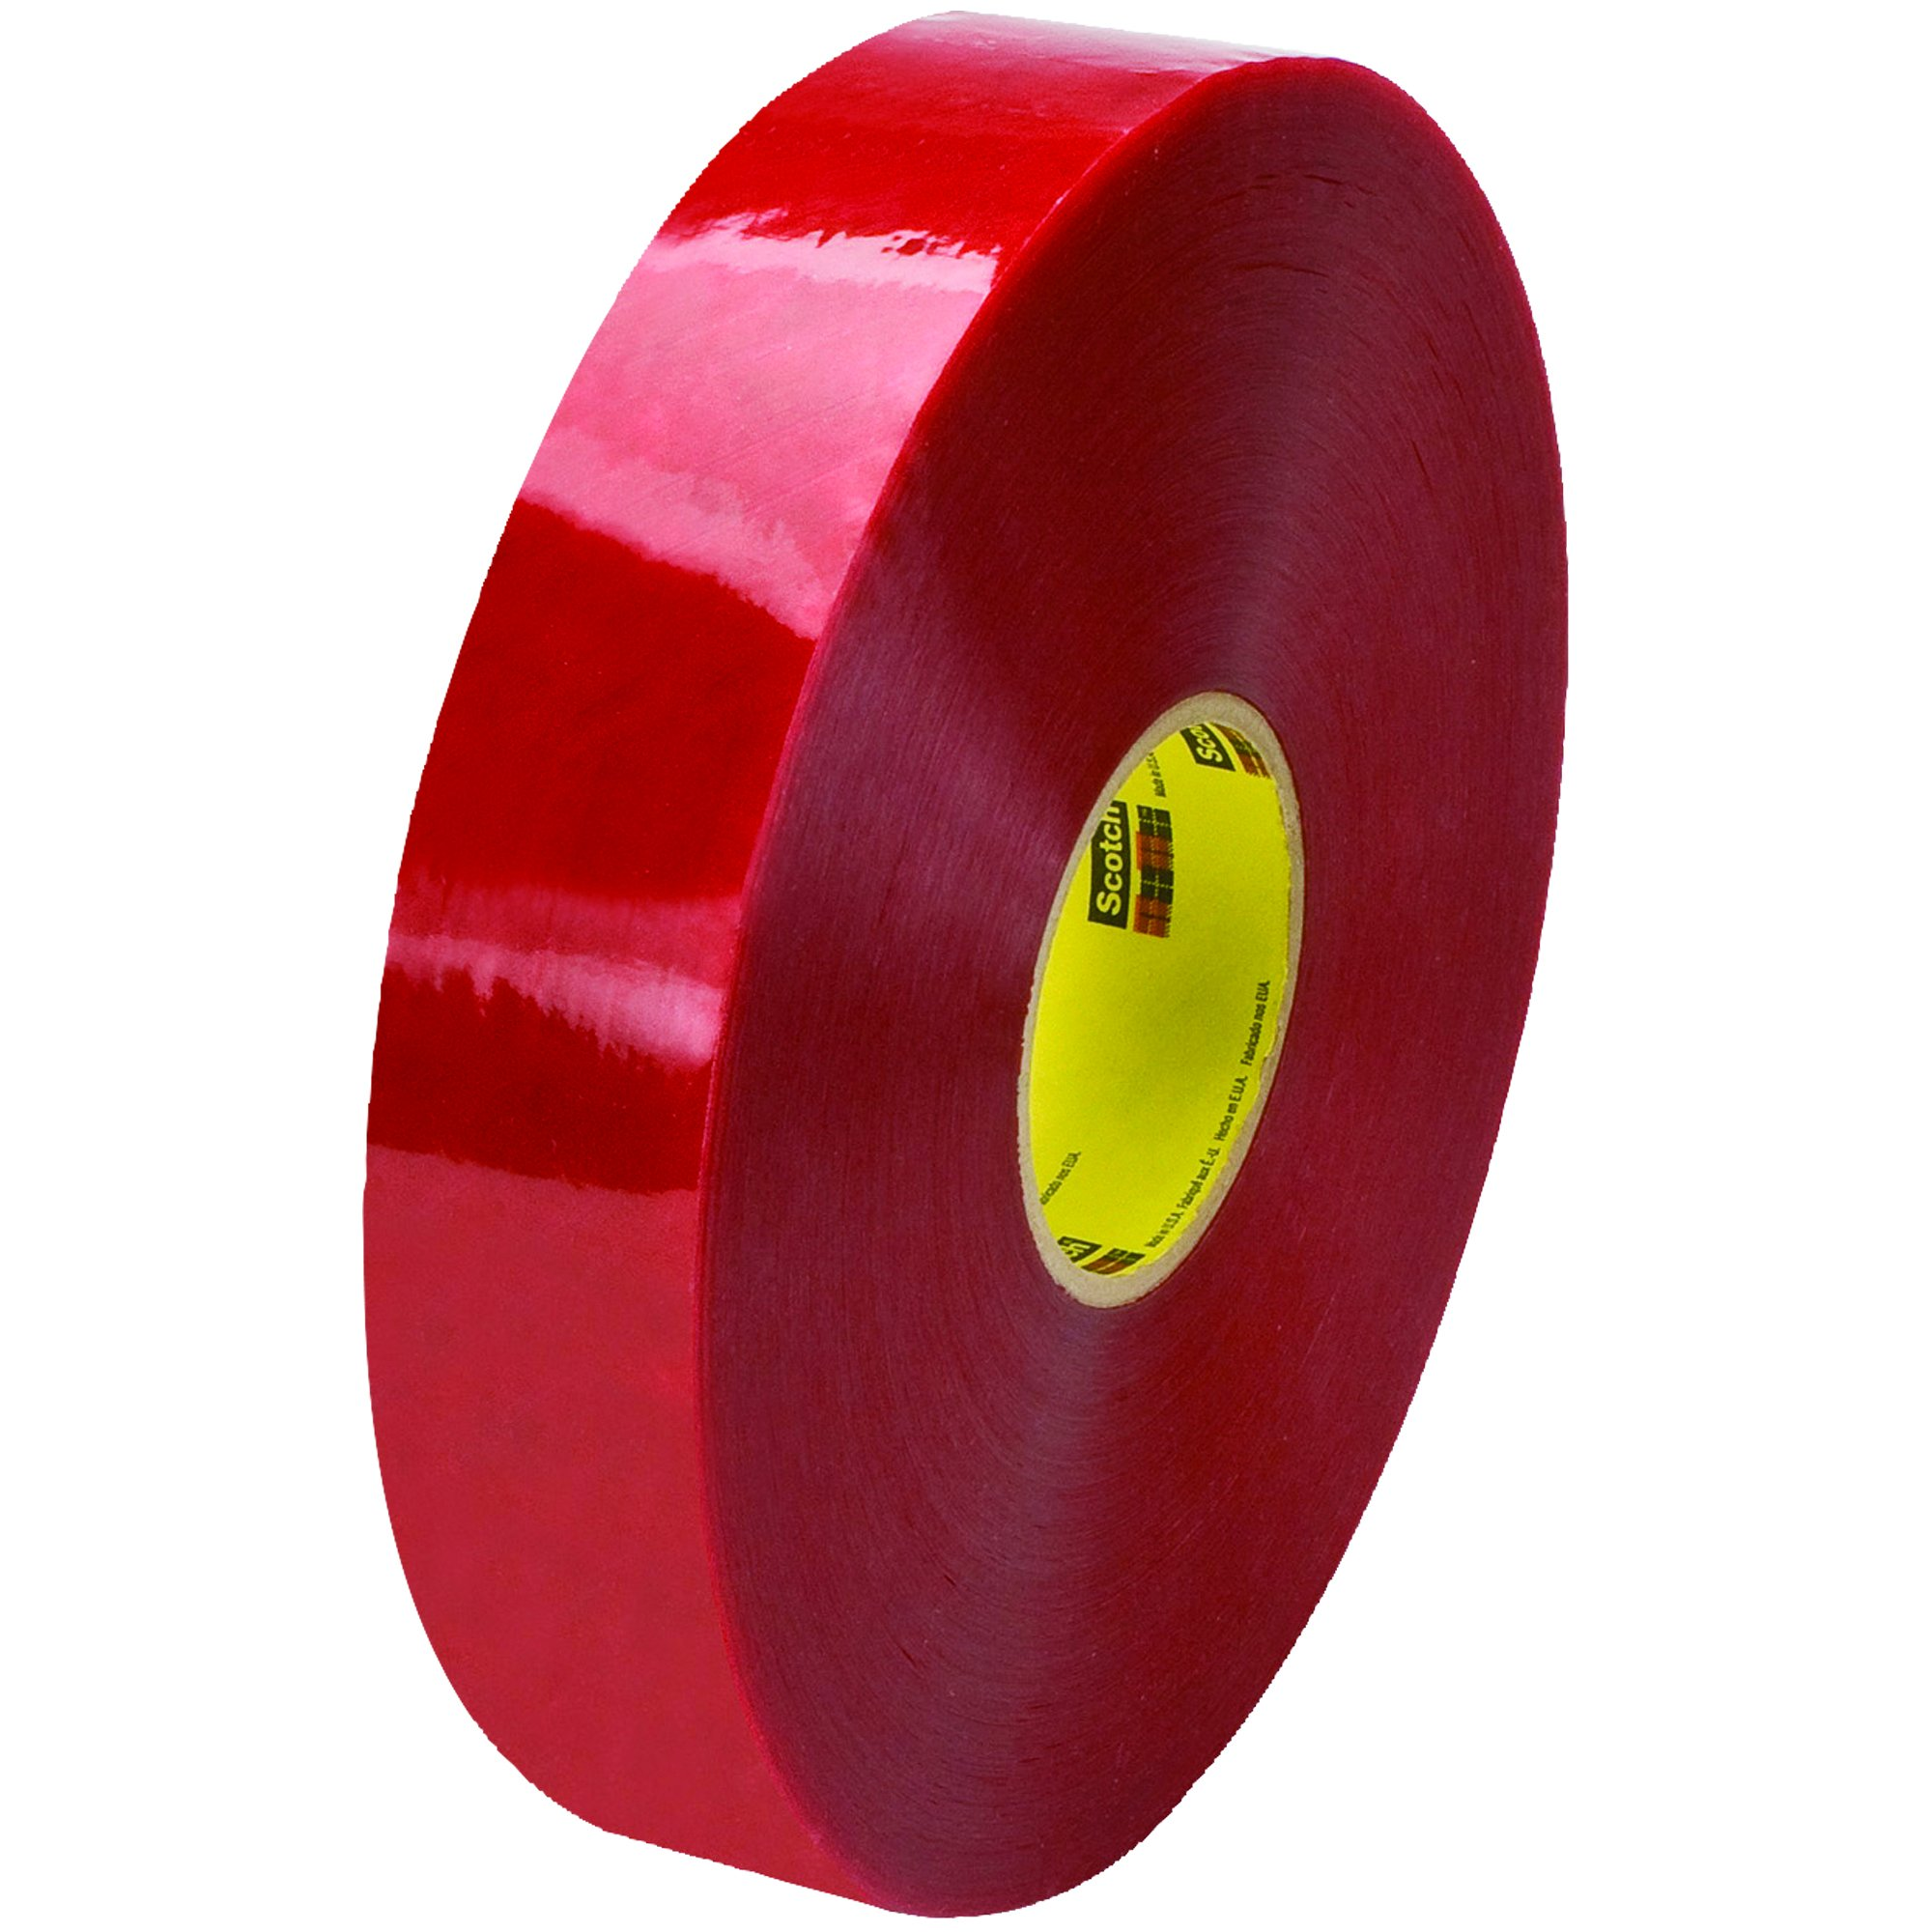 Ship Now Supply SNT9033779 3M 3779 Pre-Printed Carton Sealing Tape, 1.9 Mil, 2'' x 1000 yd., Clear/Red (Pack of 6)